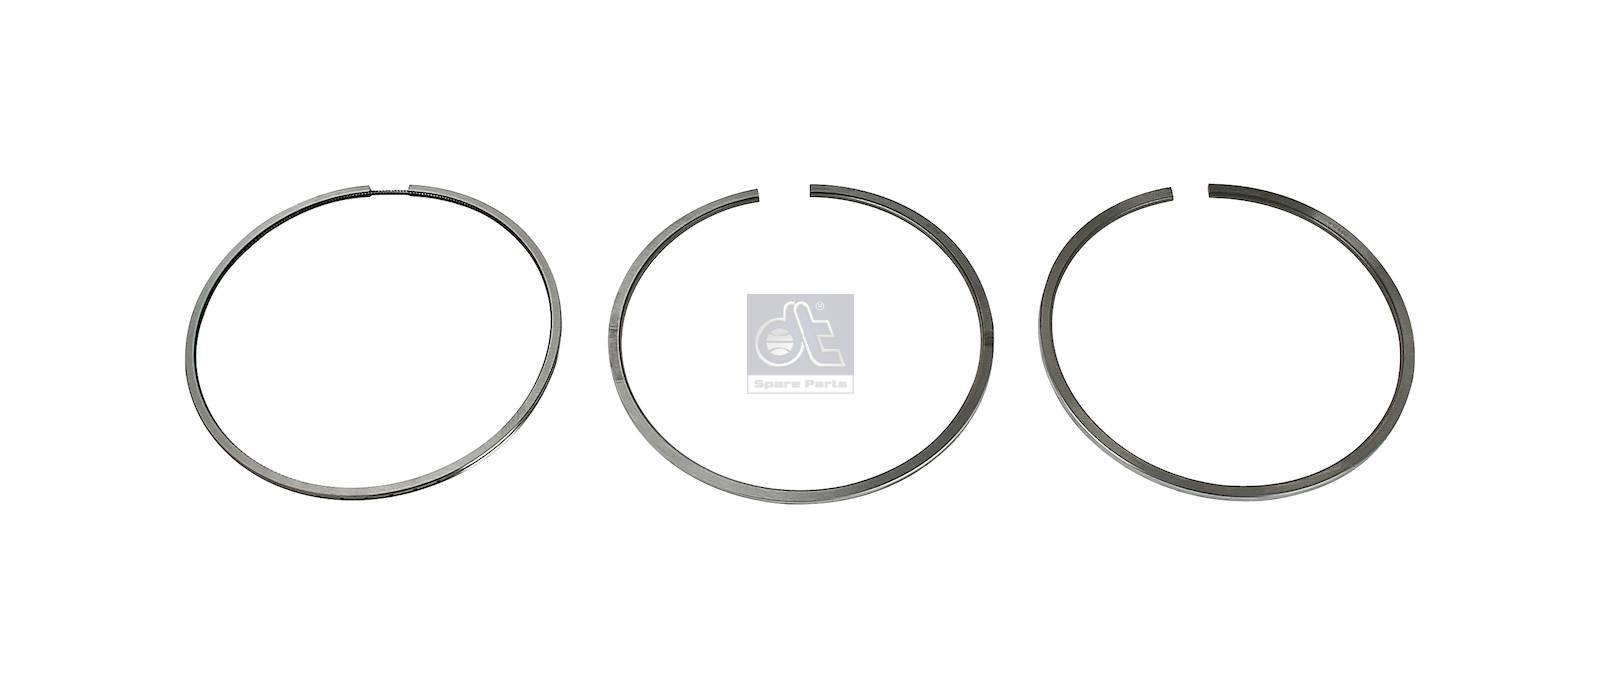 DT 1.33130 Piston ring kit 1798722 suitable for Scania